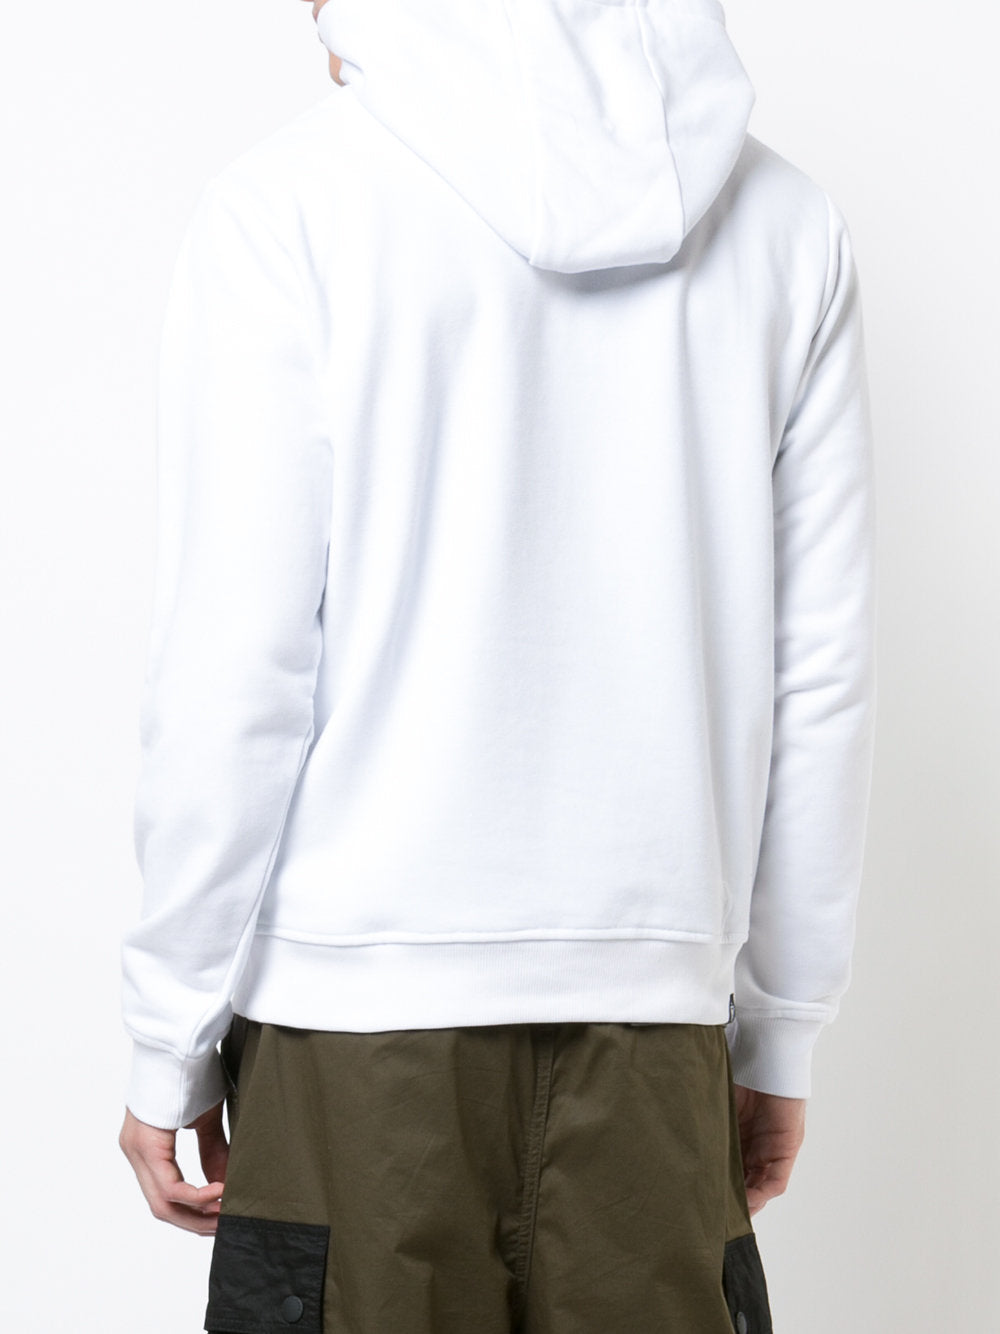 Clearance 2018 New Buy Cheap Great Deals Baller Be Killin It hoodie - White Mostly Heard Rarely Seen Cheap Sale Pay With Visa Outlet Extremely Hot Sale Sale Online aqPtB